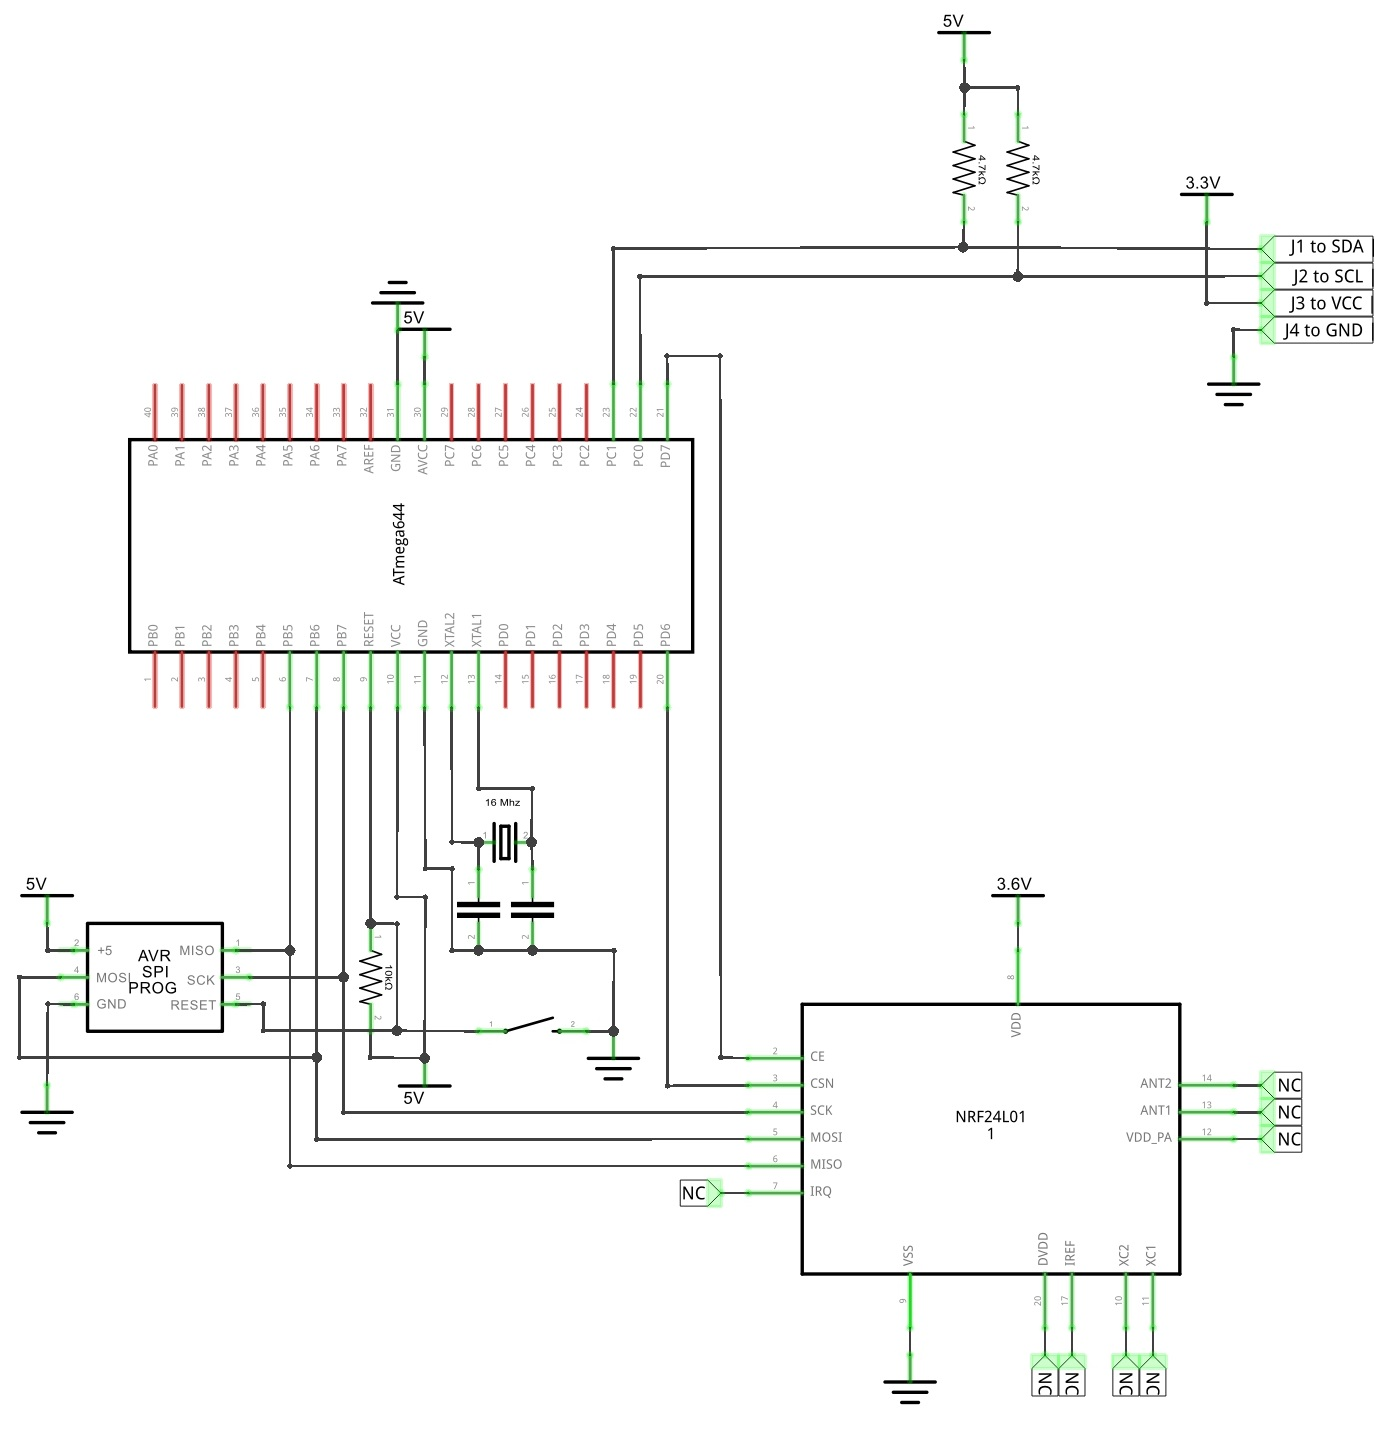 ece 4760 segway robot figure 10 schematic of the segway robot controller board